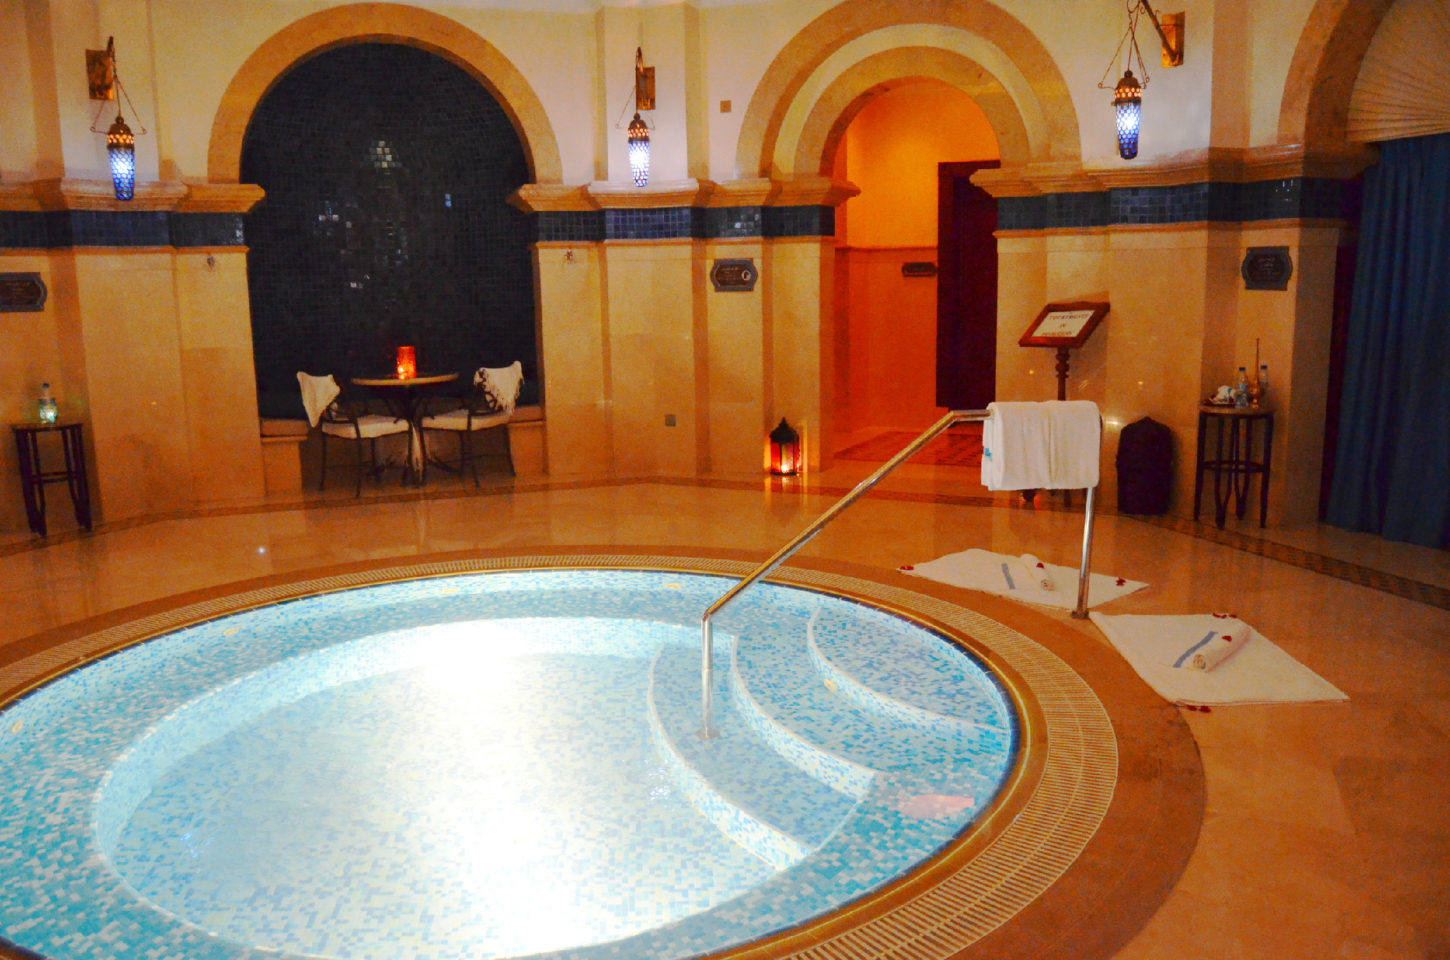 lifestyle redesign  - dsc 1054edited - Review of the One&Only Spa @ One&Only Royal Mirage